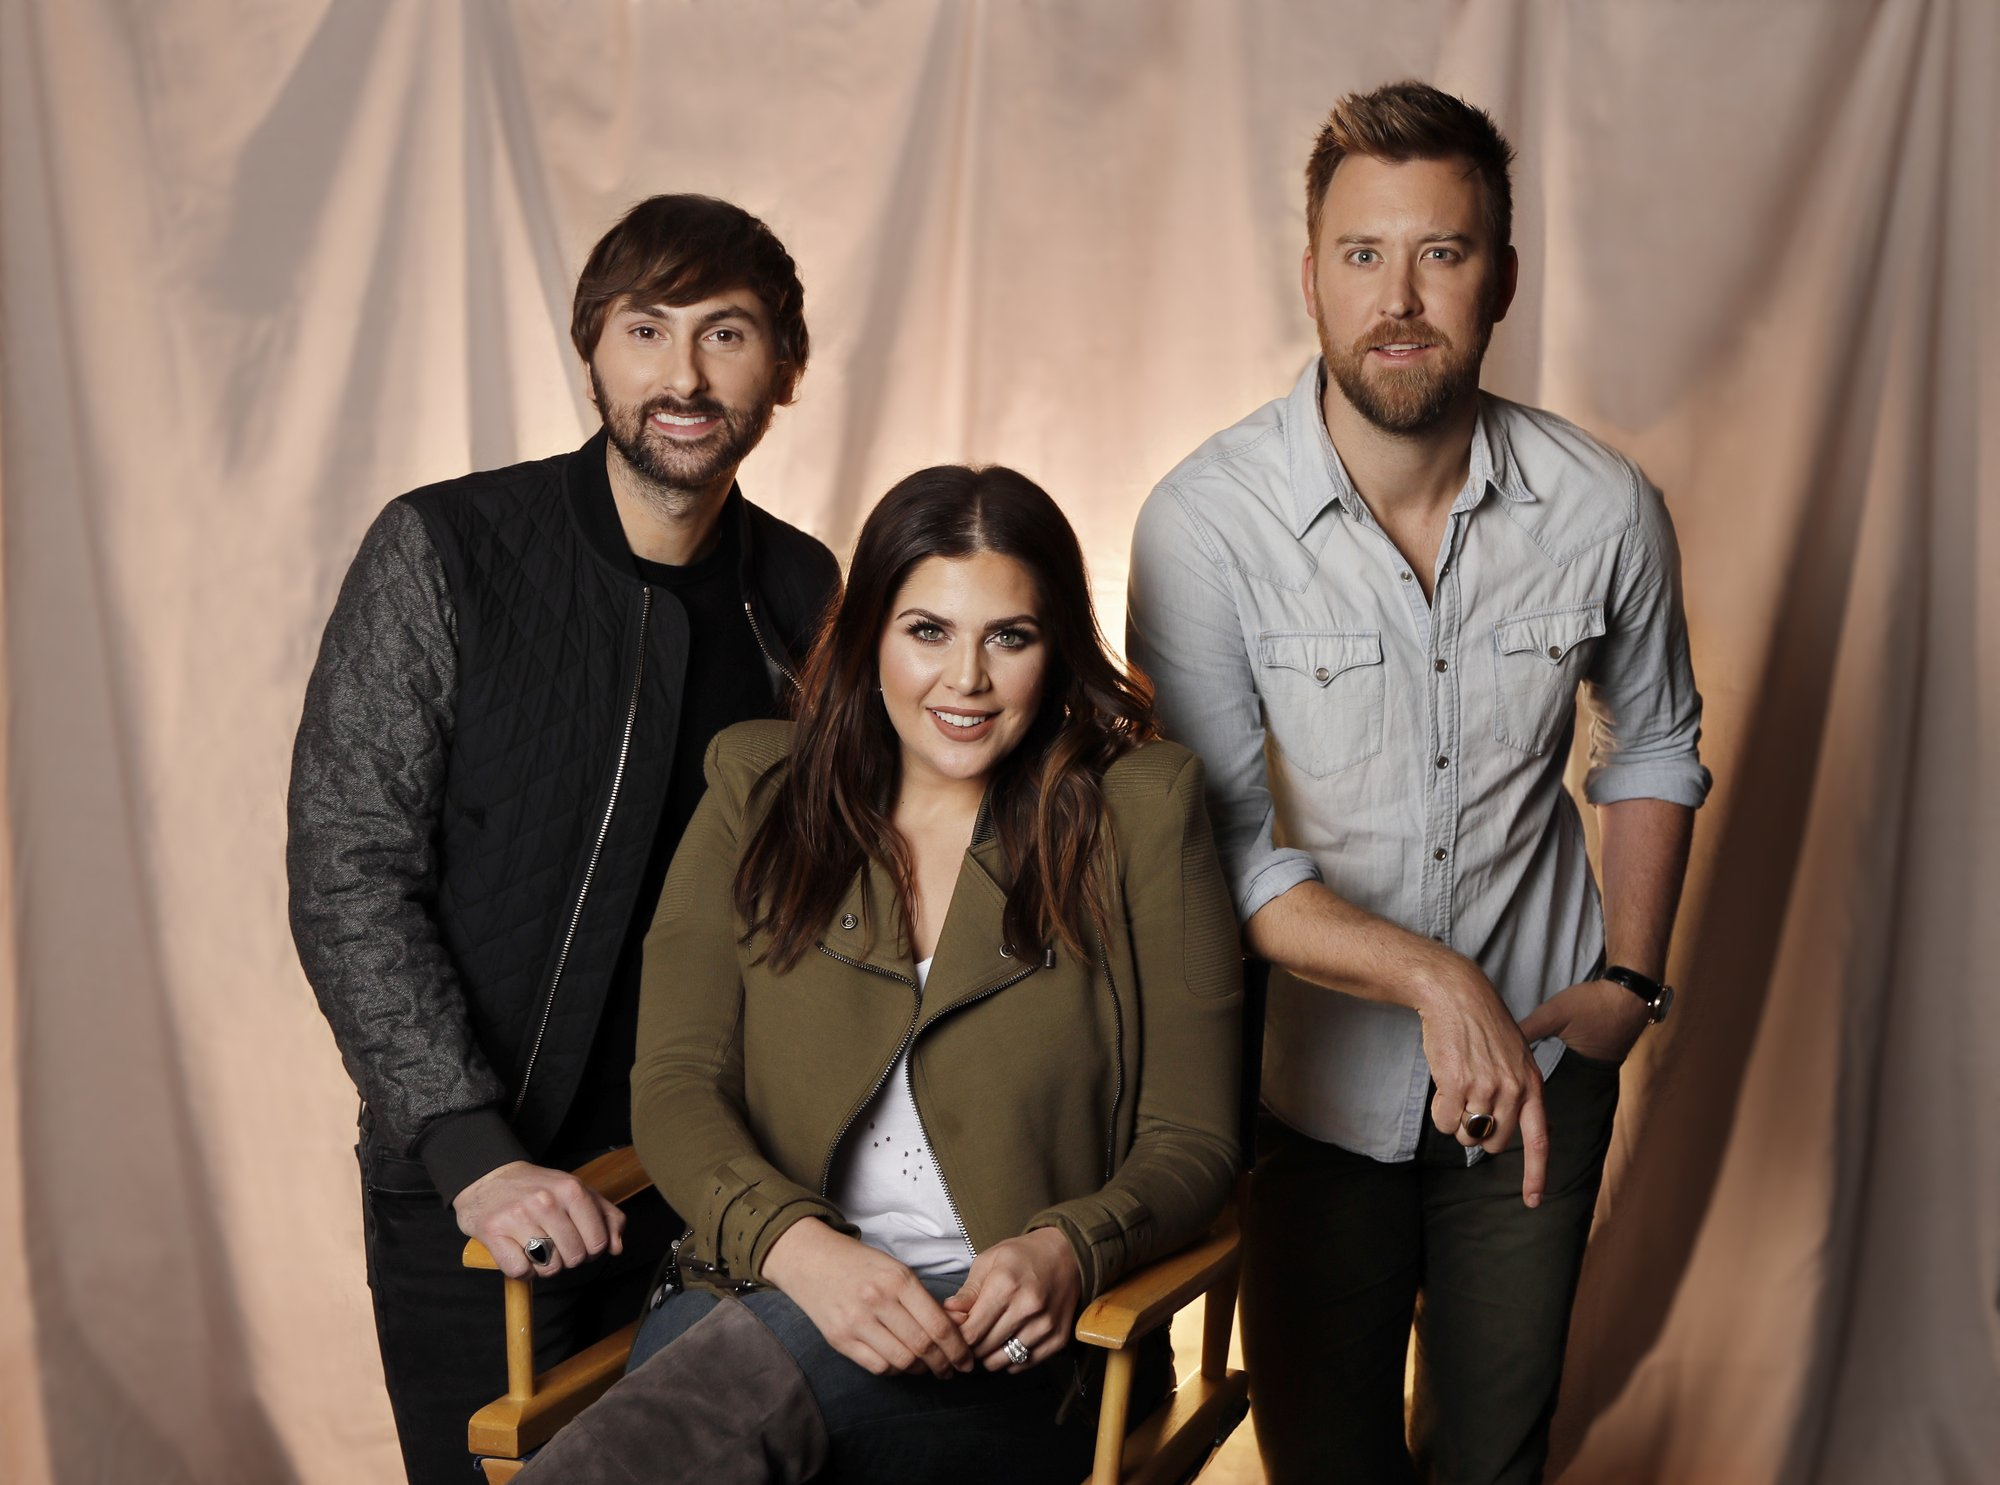 After short hiatus lady antebellum is back with new music m4hsunfo